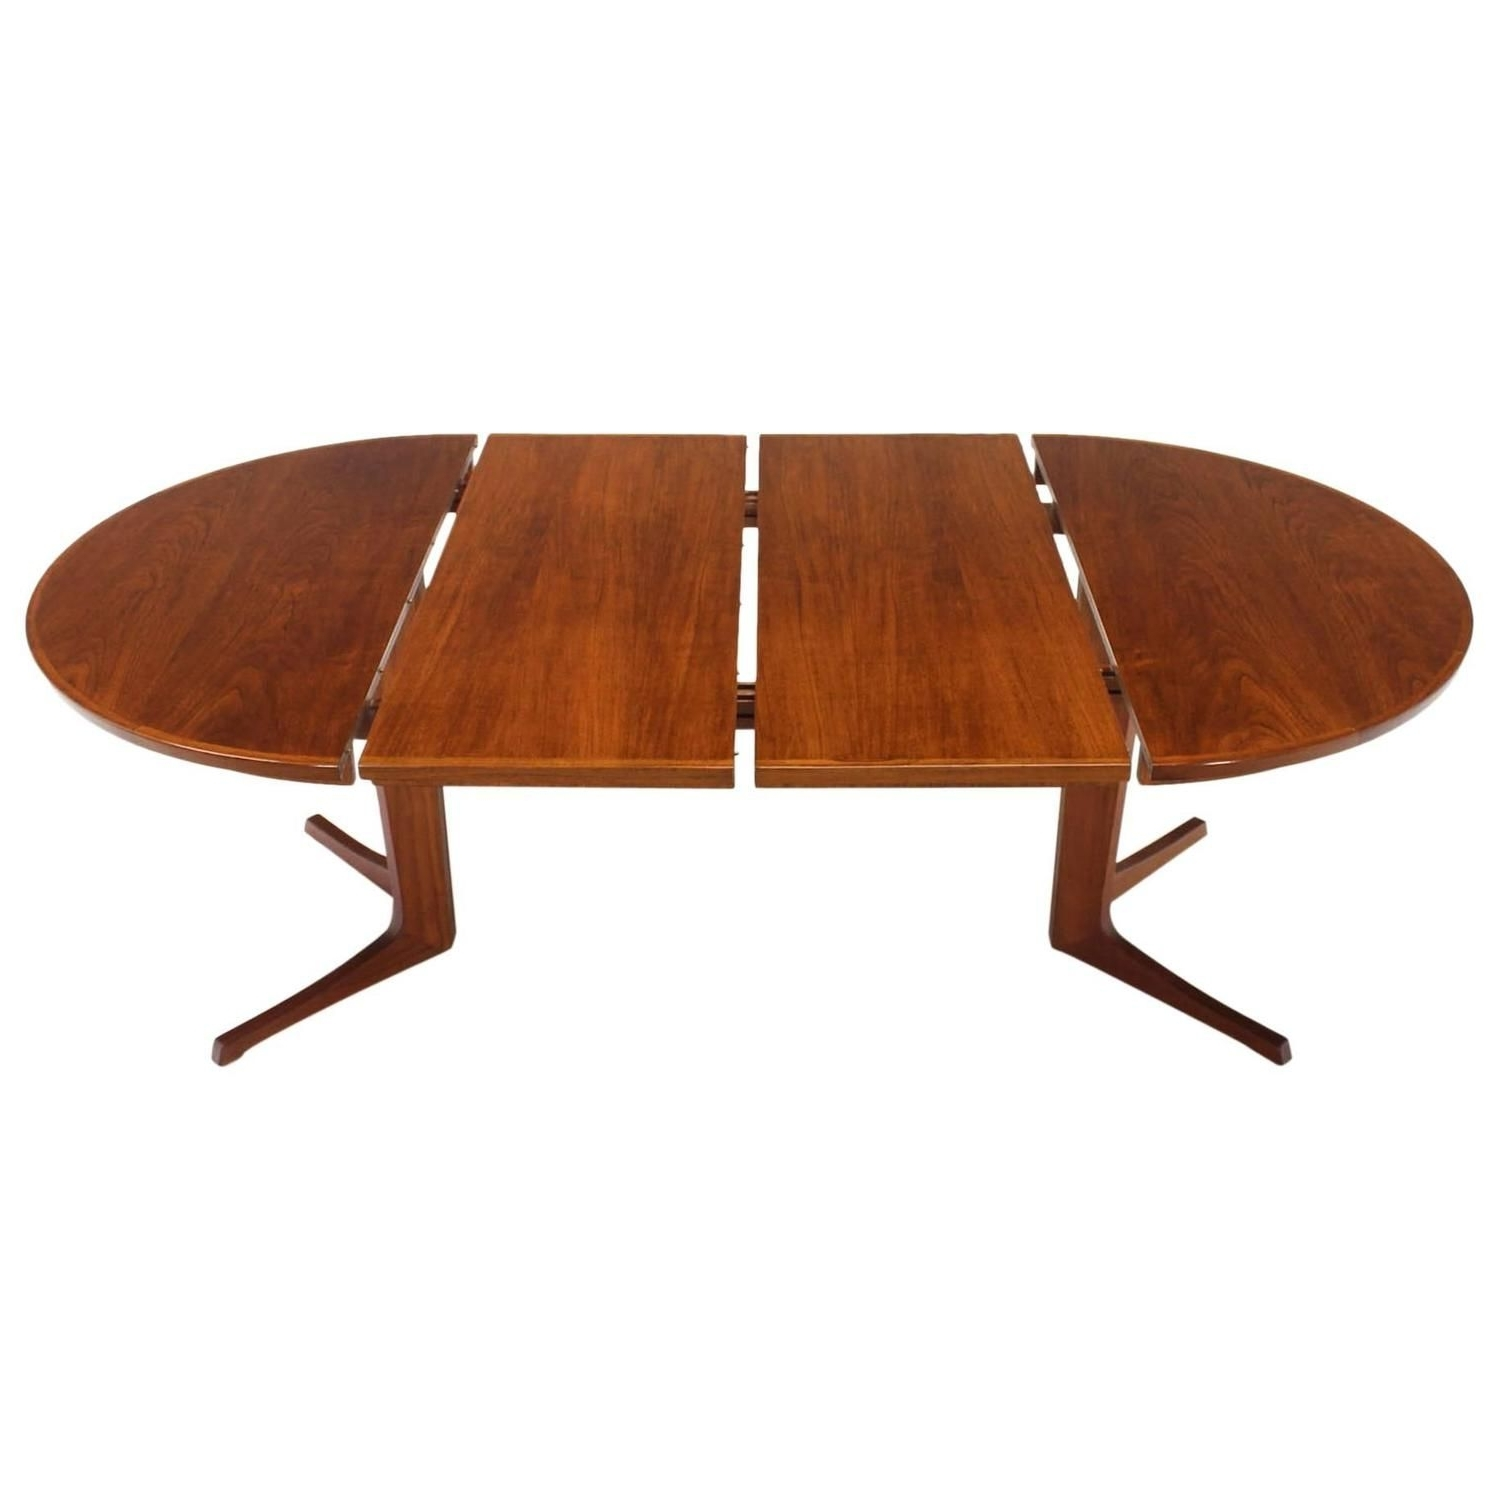 Round Danish Mid Century Modern Teak Dining Table With Two Leaves With Favorite Round Teak Dining Tables (View 13 of 25)